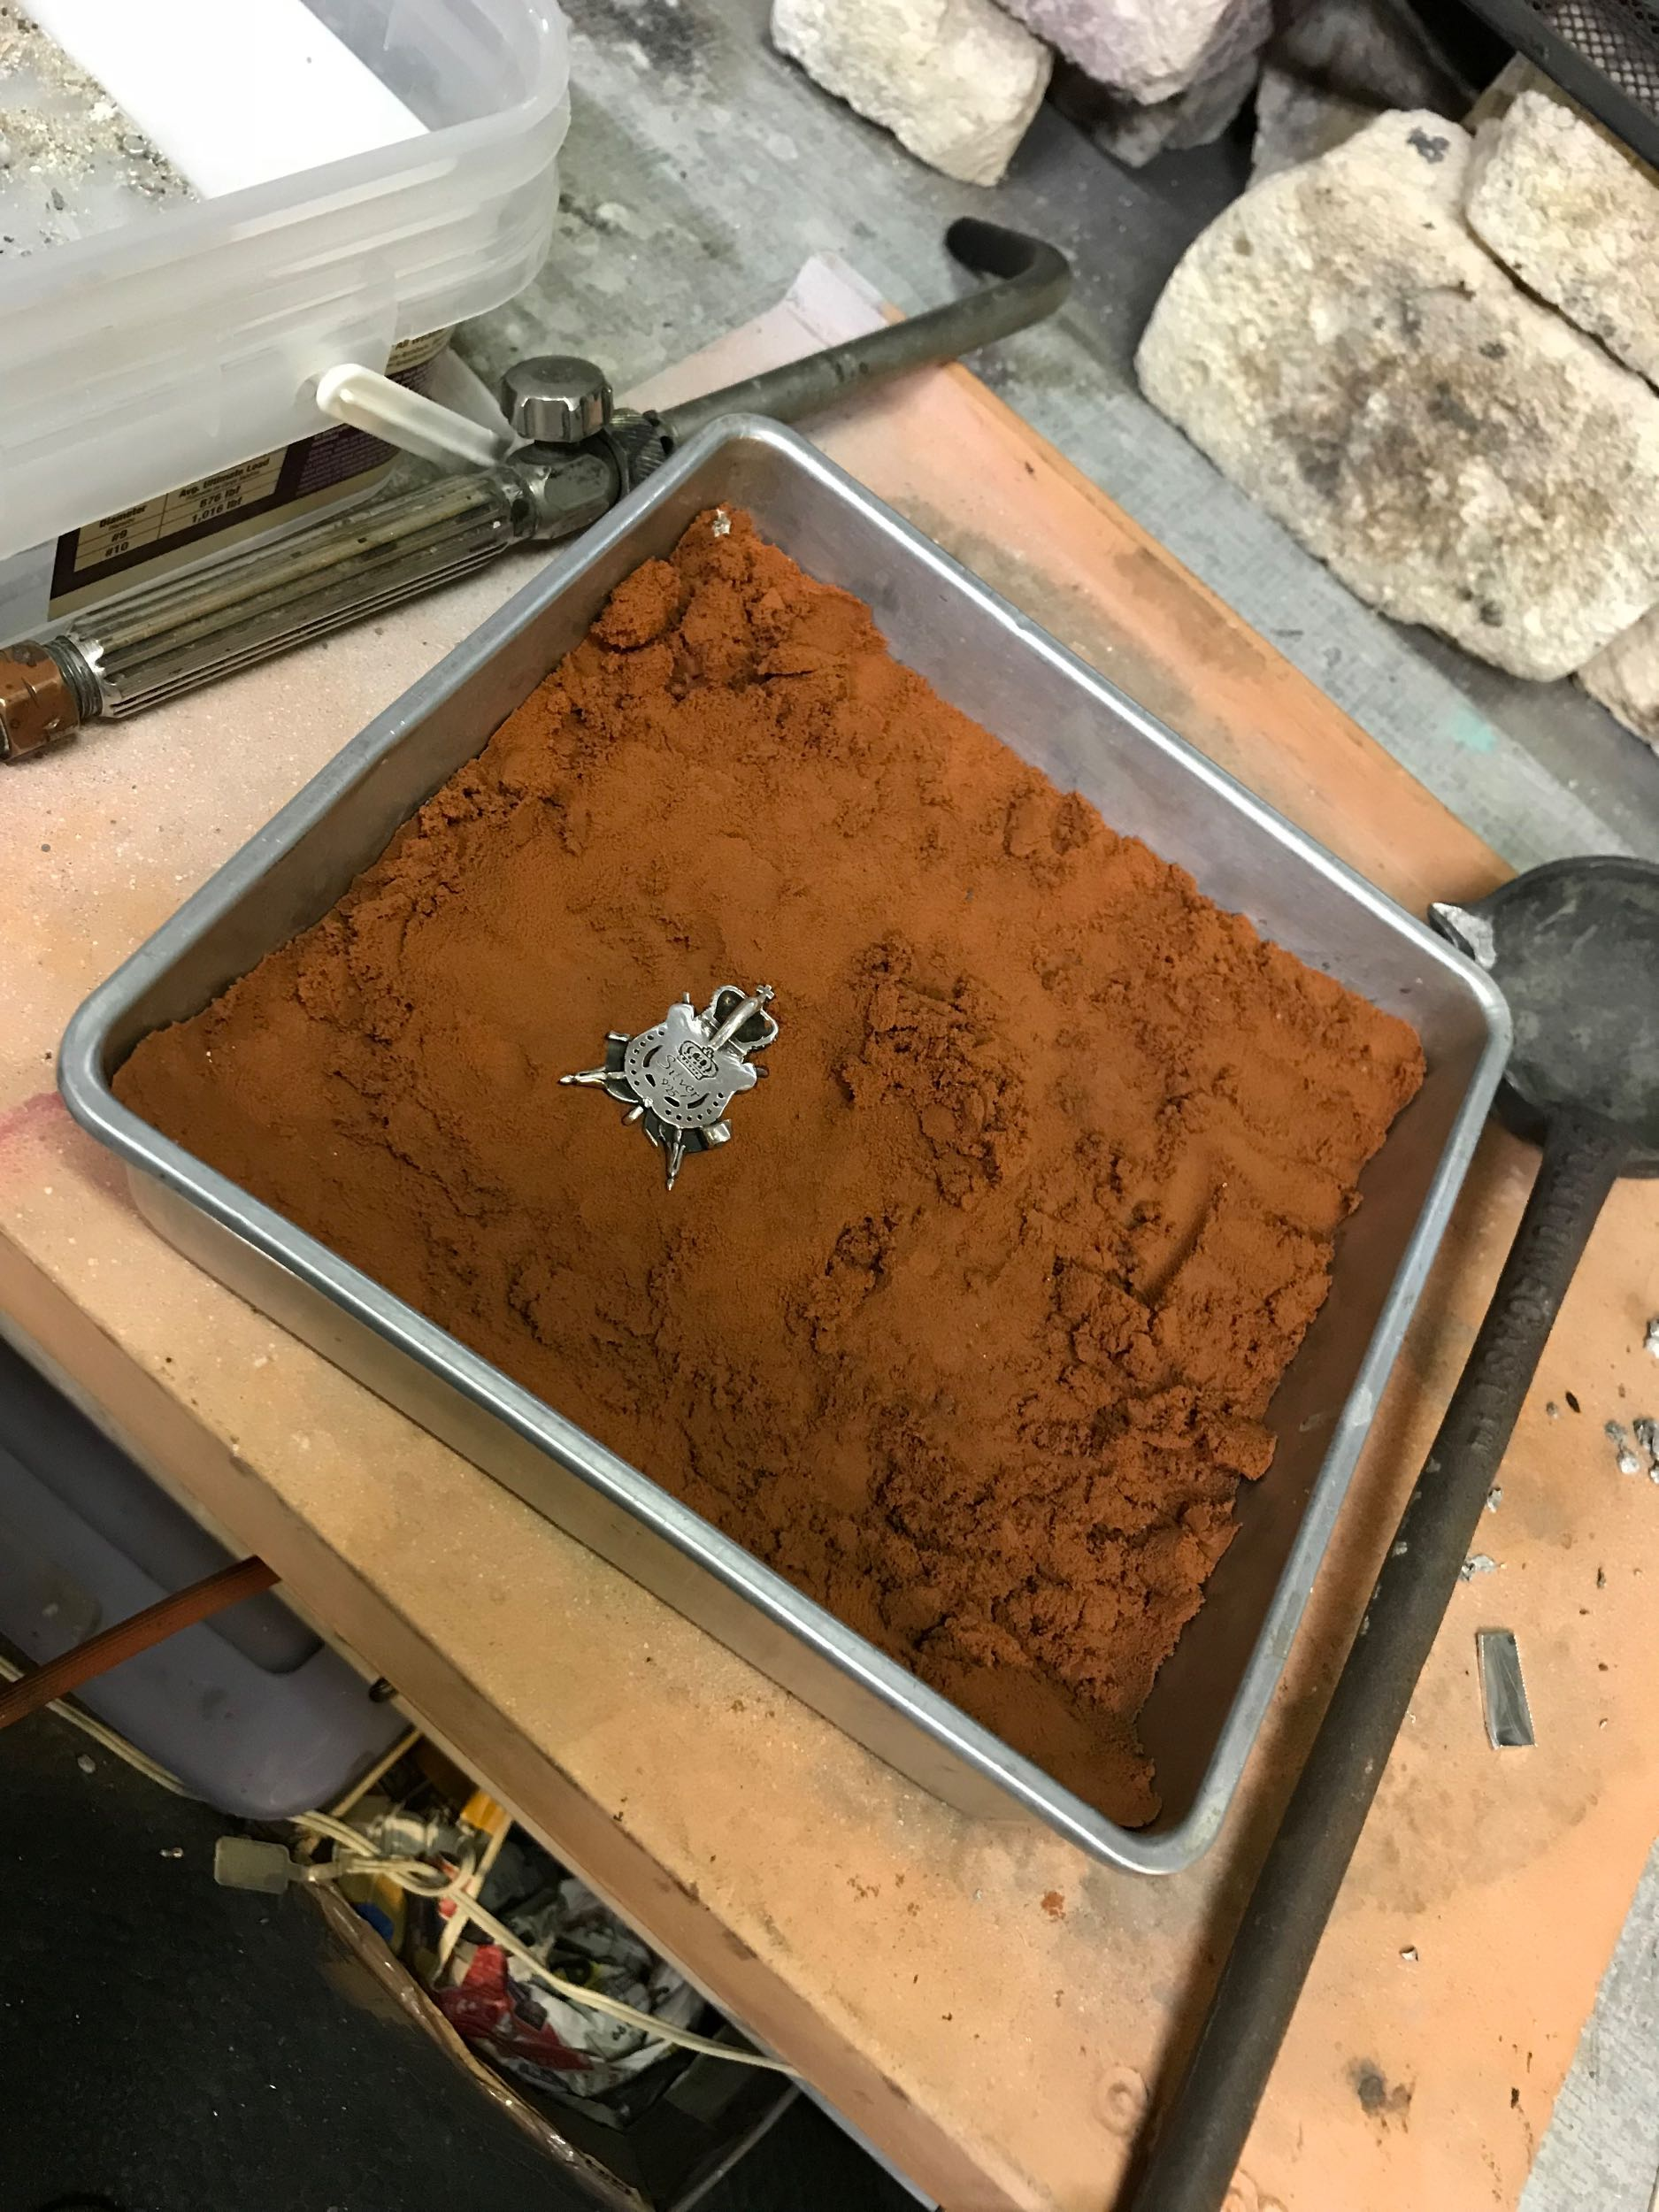 Original brooch placed into the casting sand